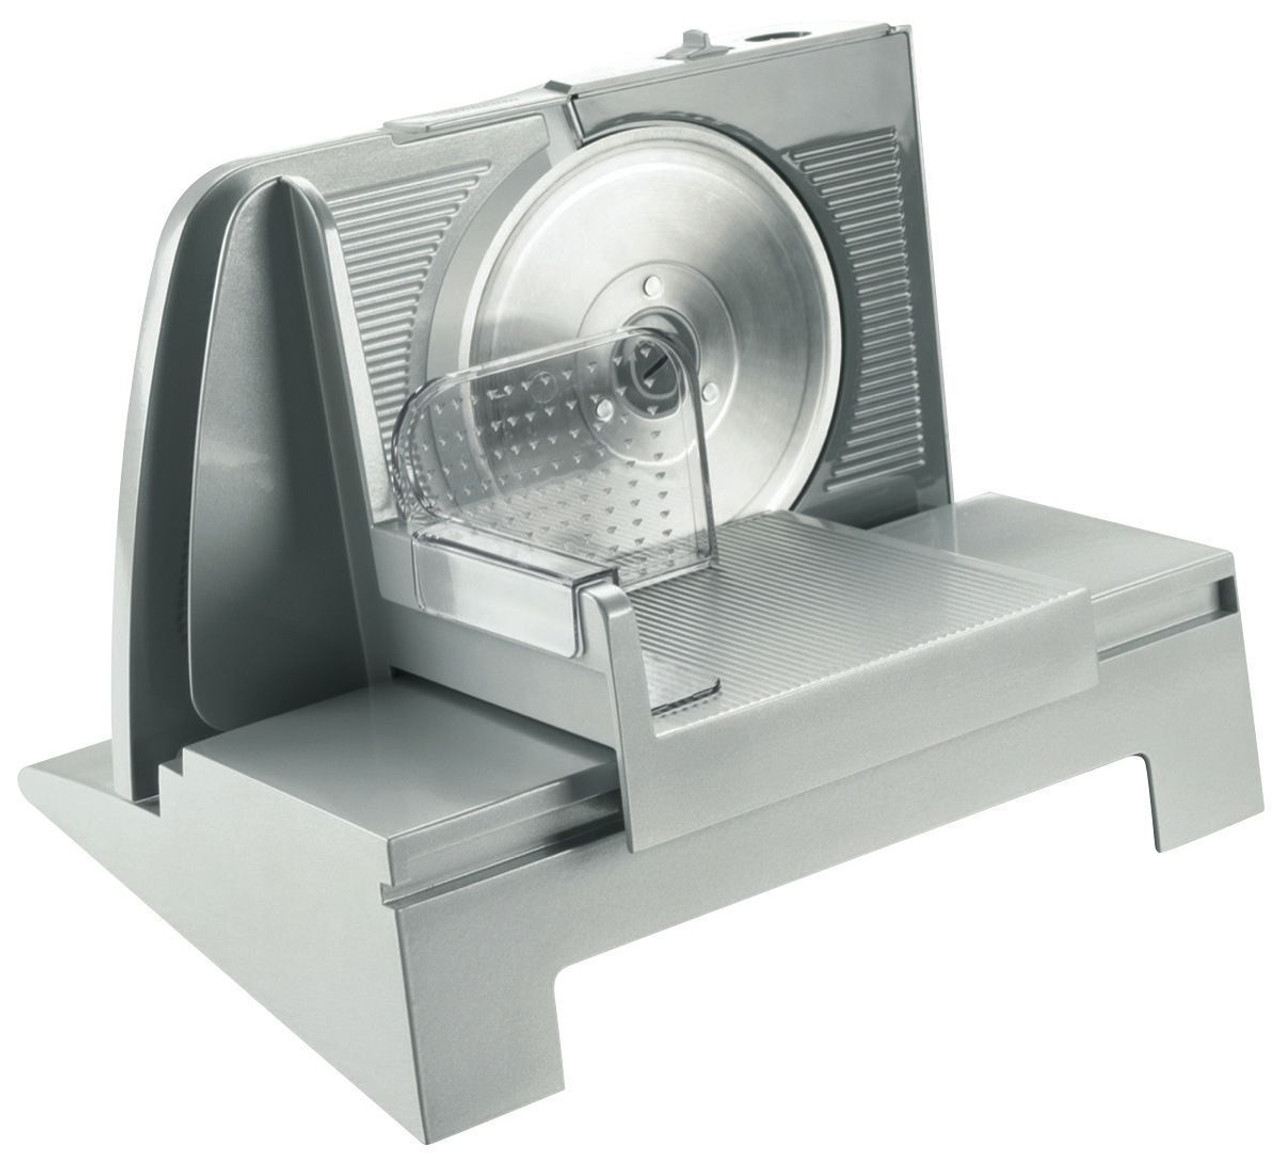 Sunbeam ES9600 Café Series 17cm Food Slicer with Tilted Design